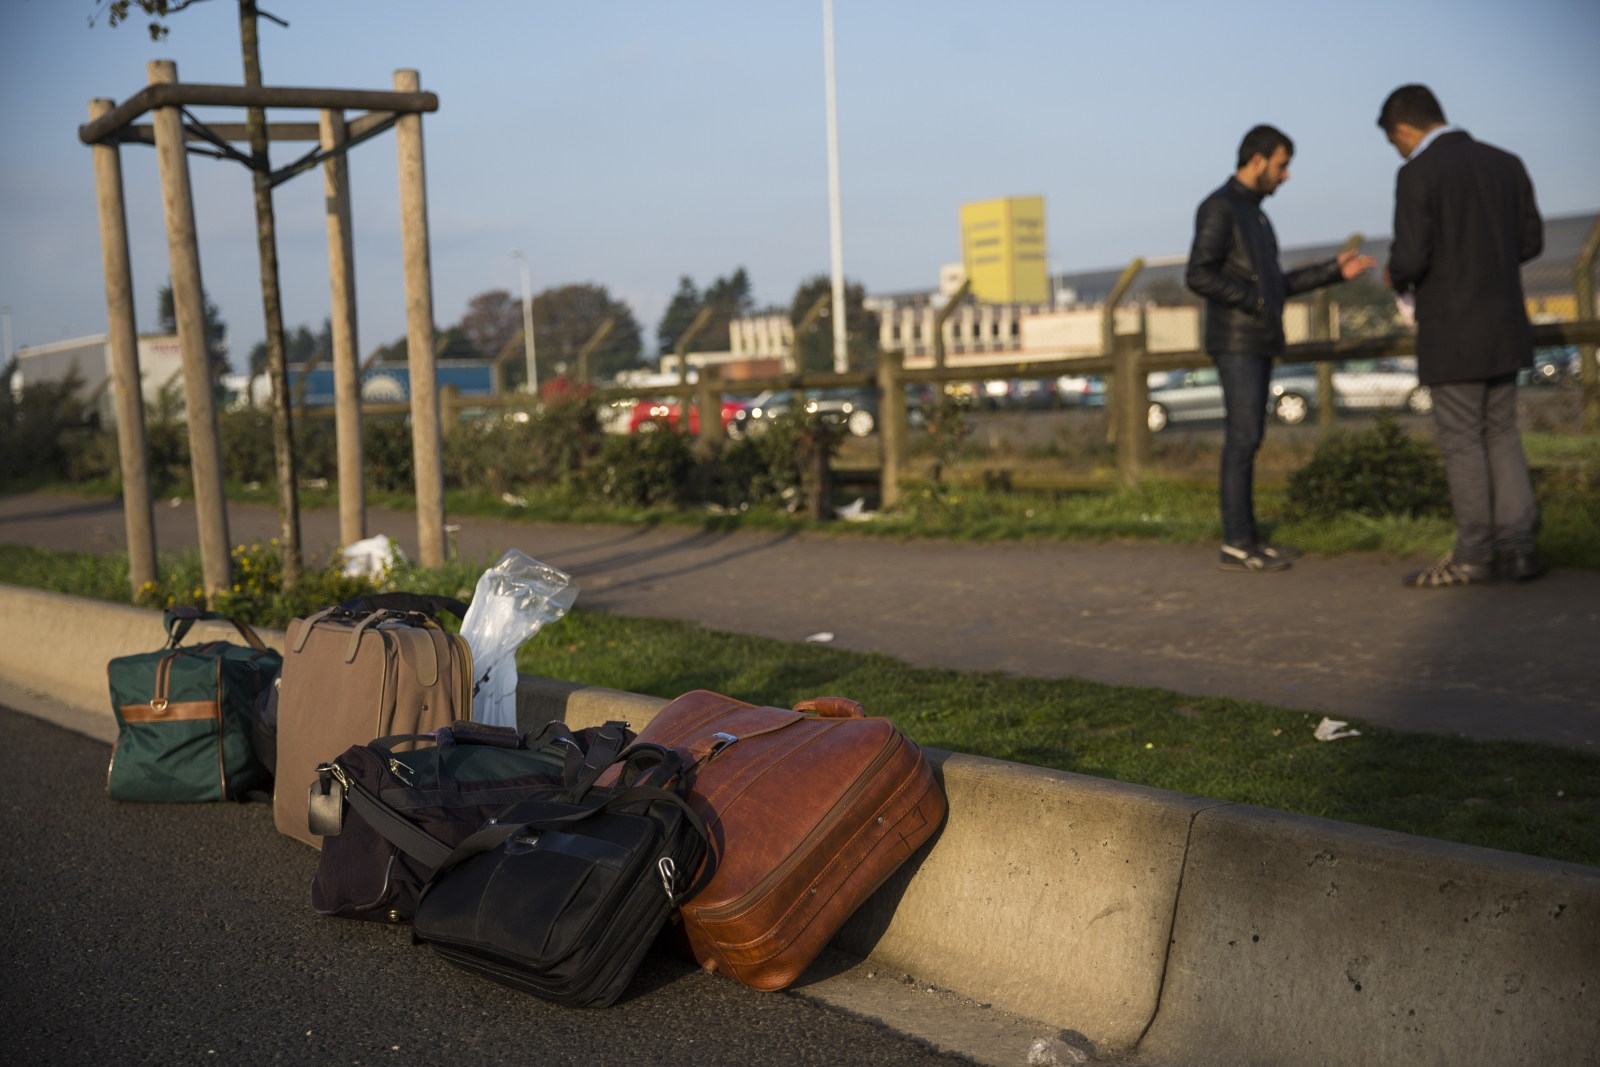 Calais refugees relocated in France